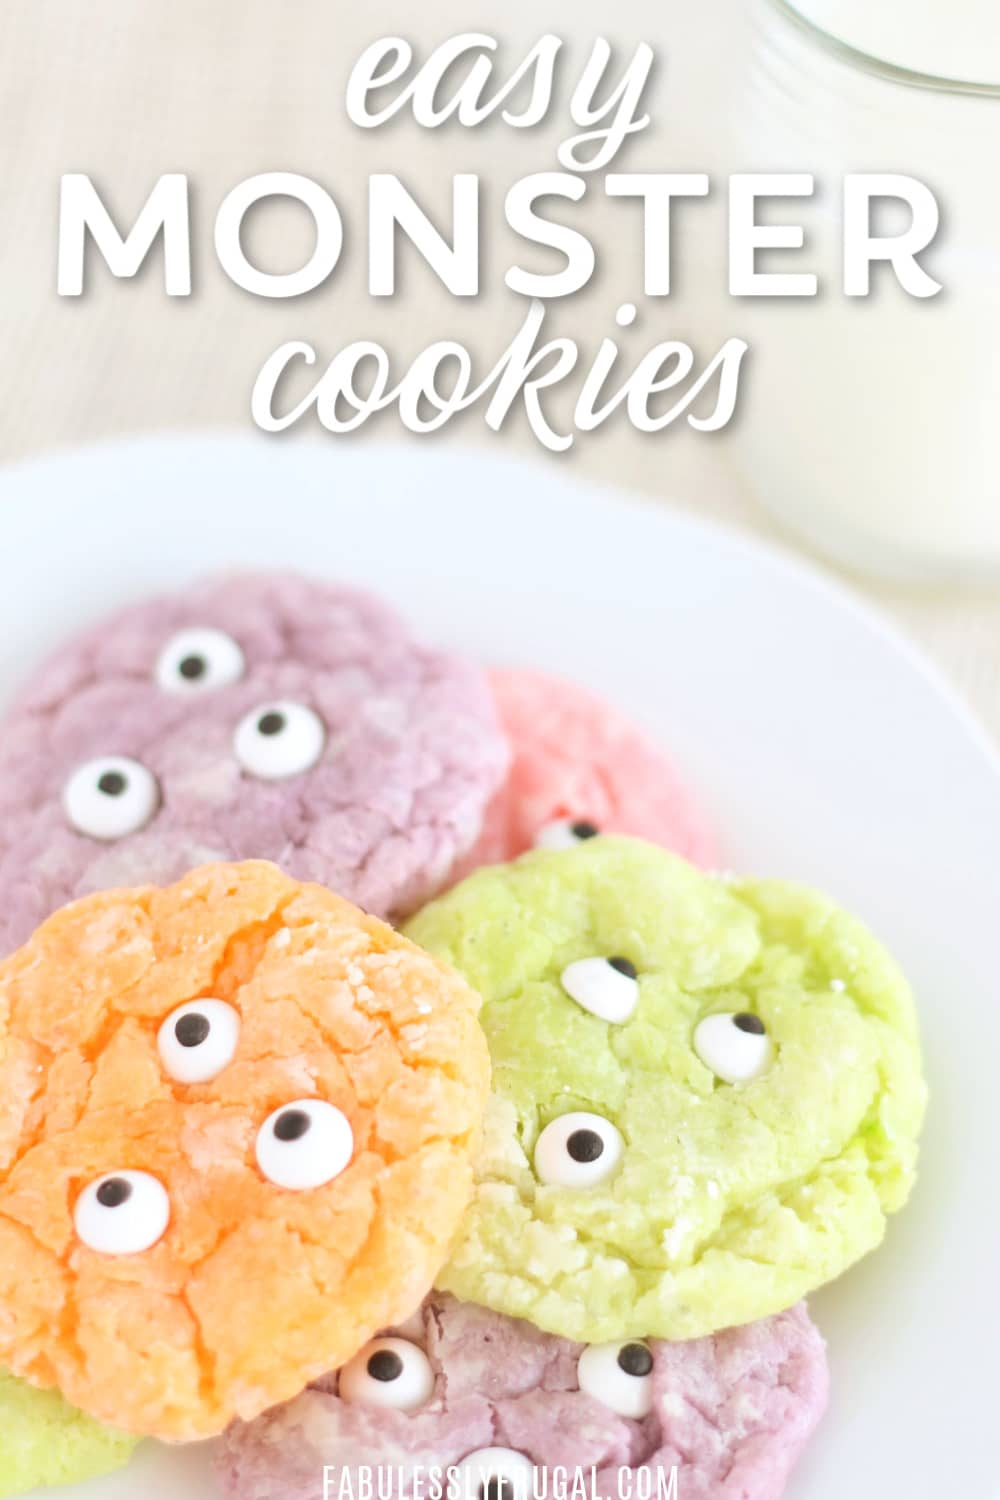 Easy monster eye cookies